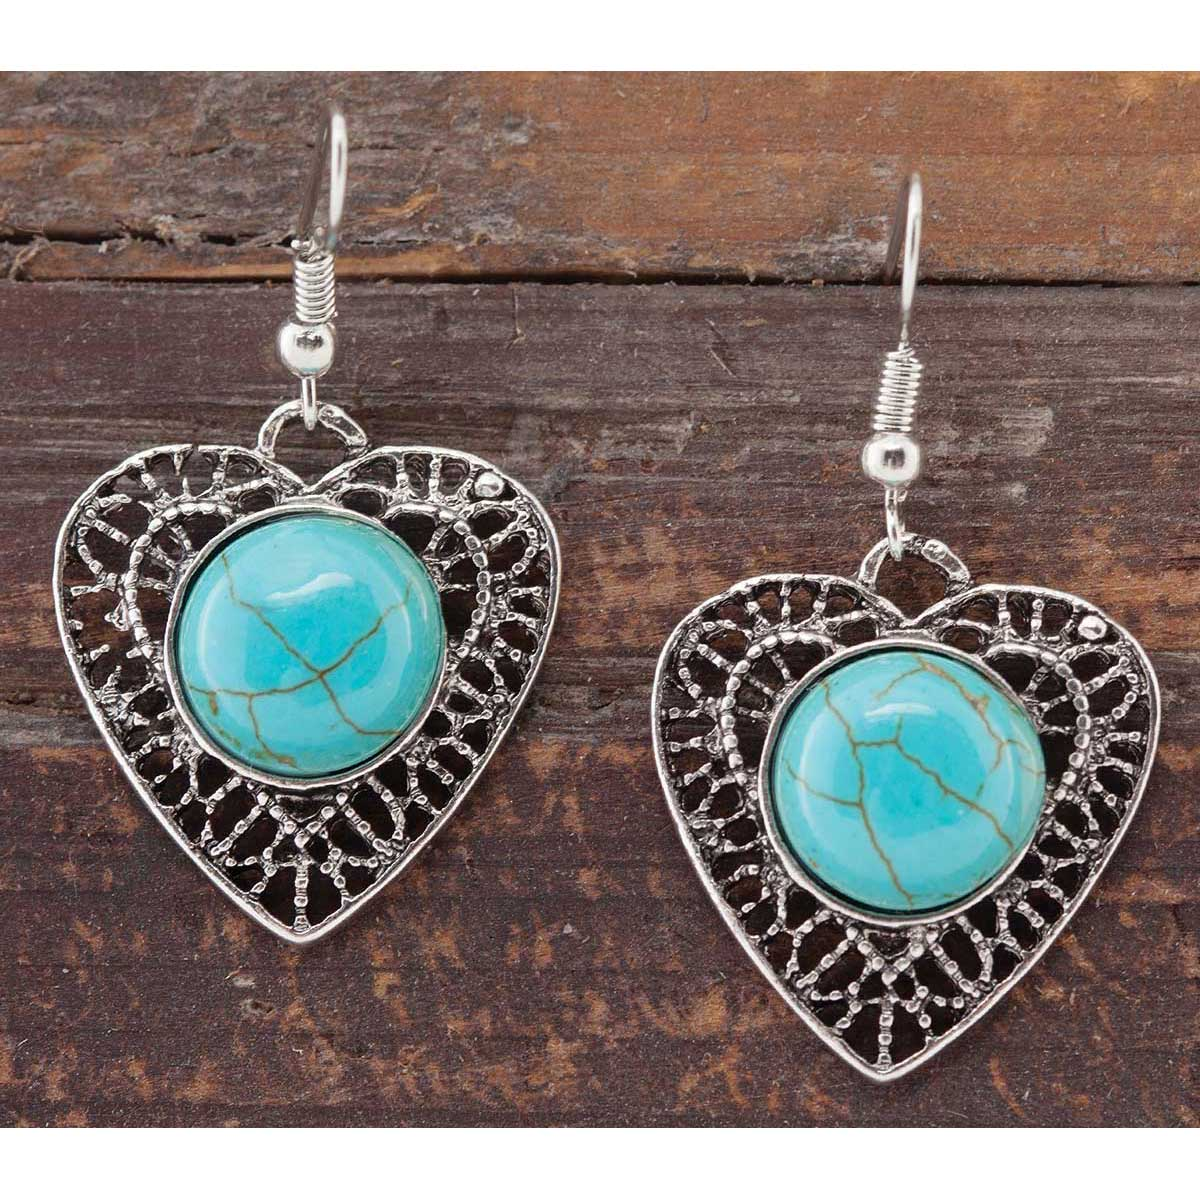 Antique Silver and Turquoise Heart Medallion French Wire Earring